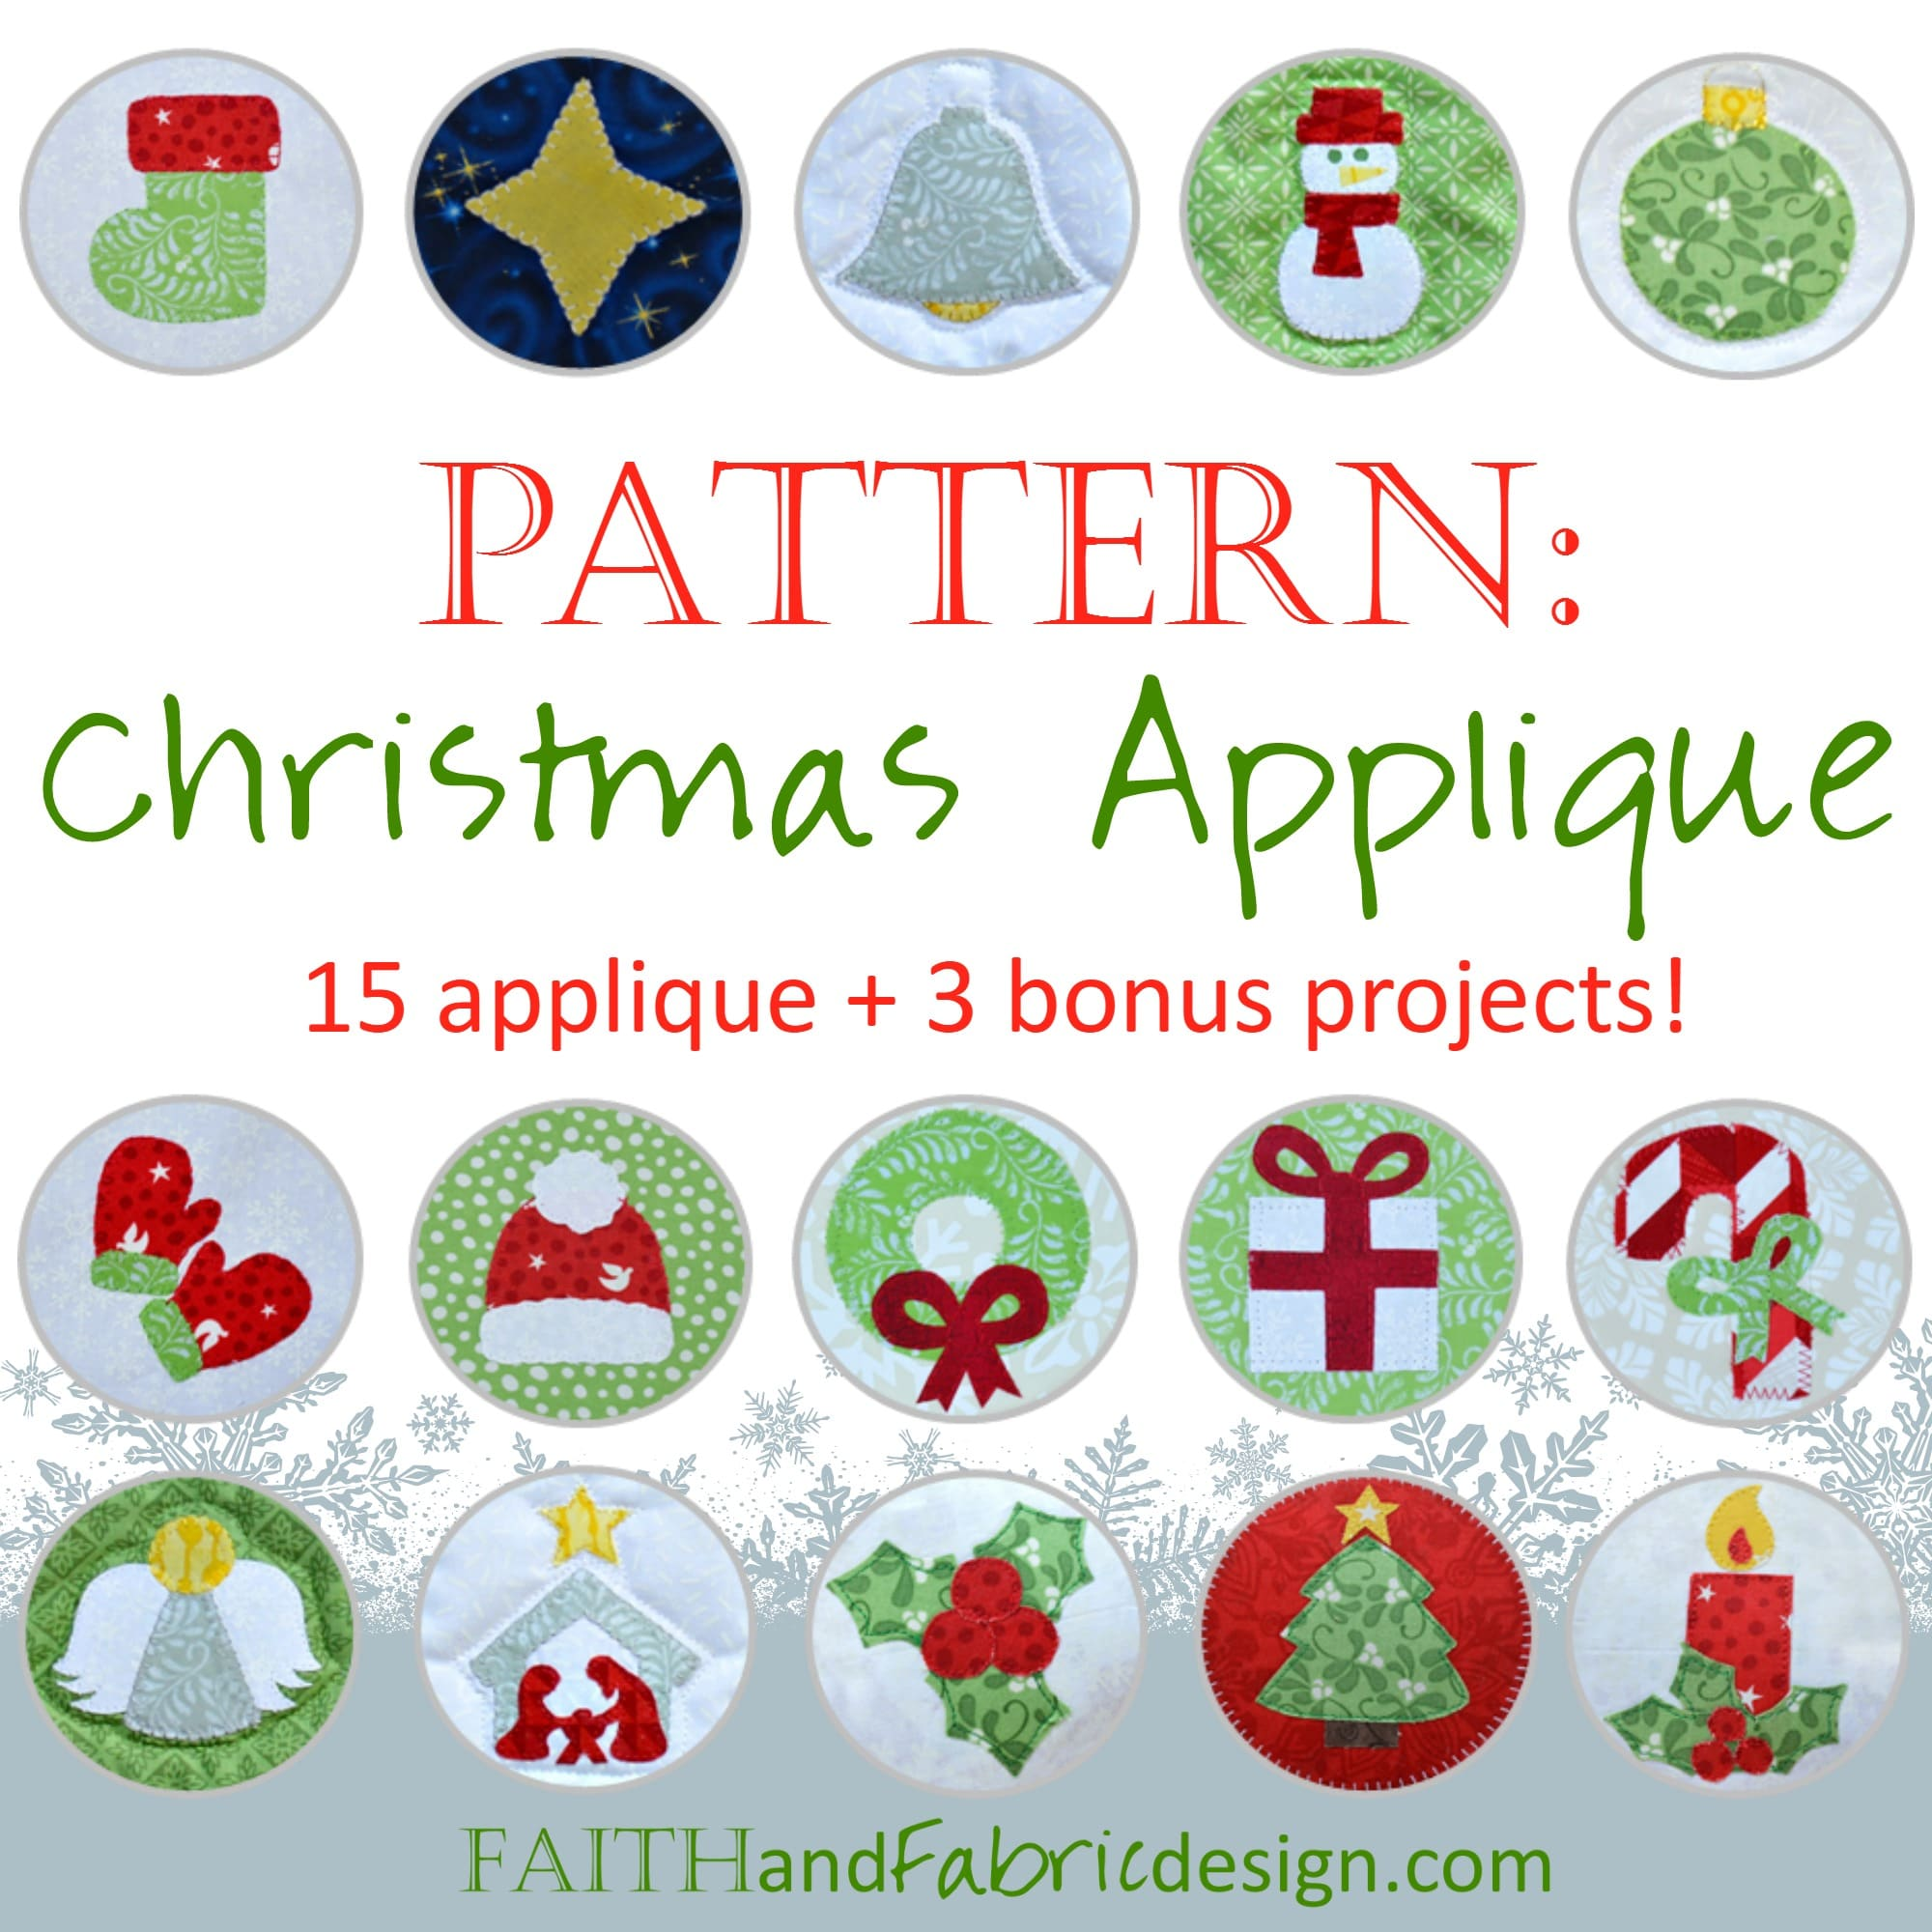 Pattern: Christmas Applique Quilt Patterns - Faith and Fabric